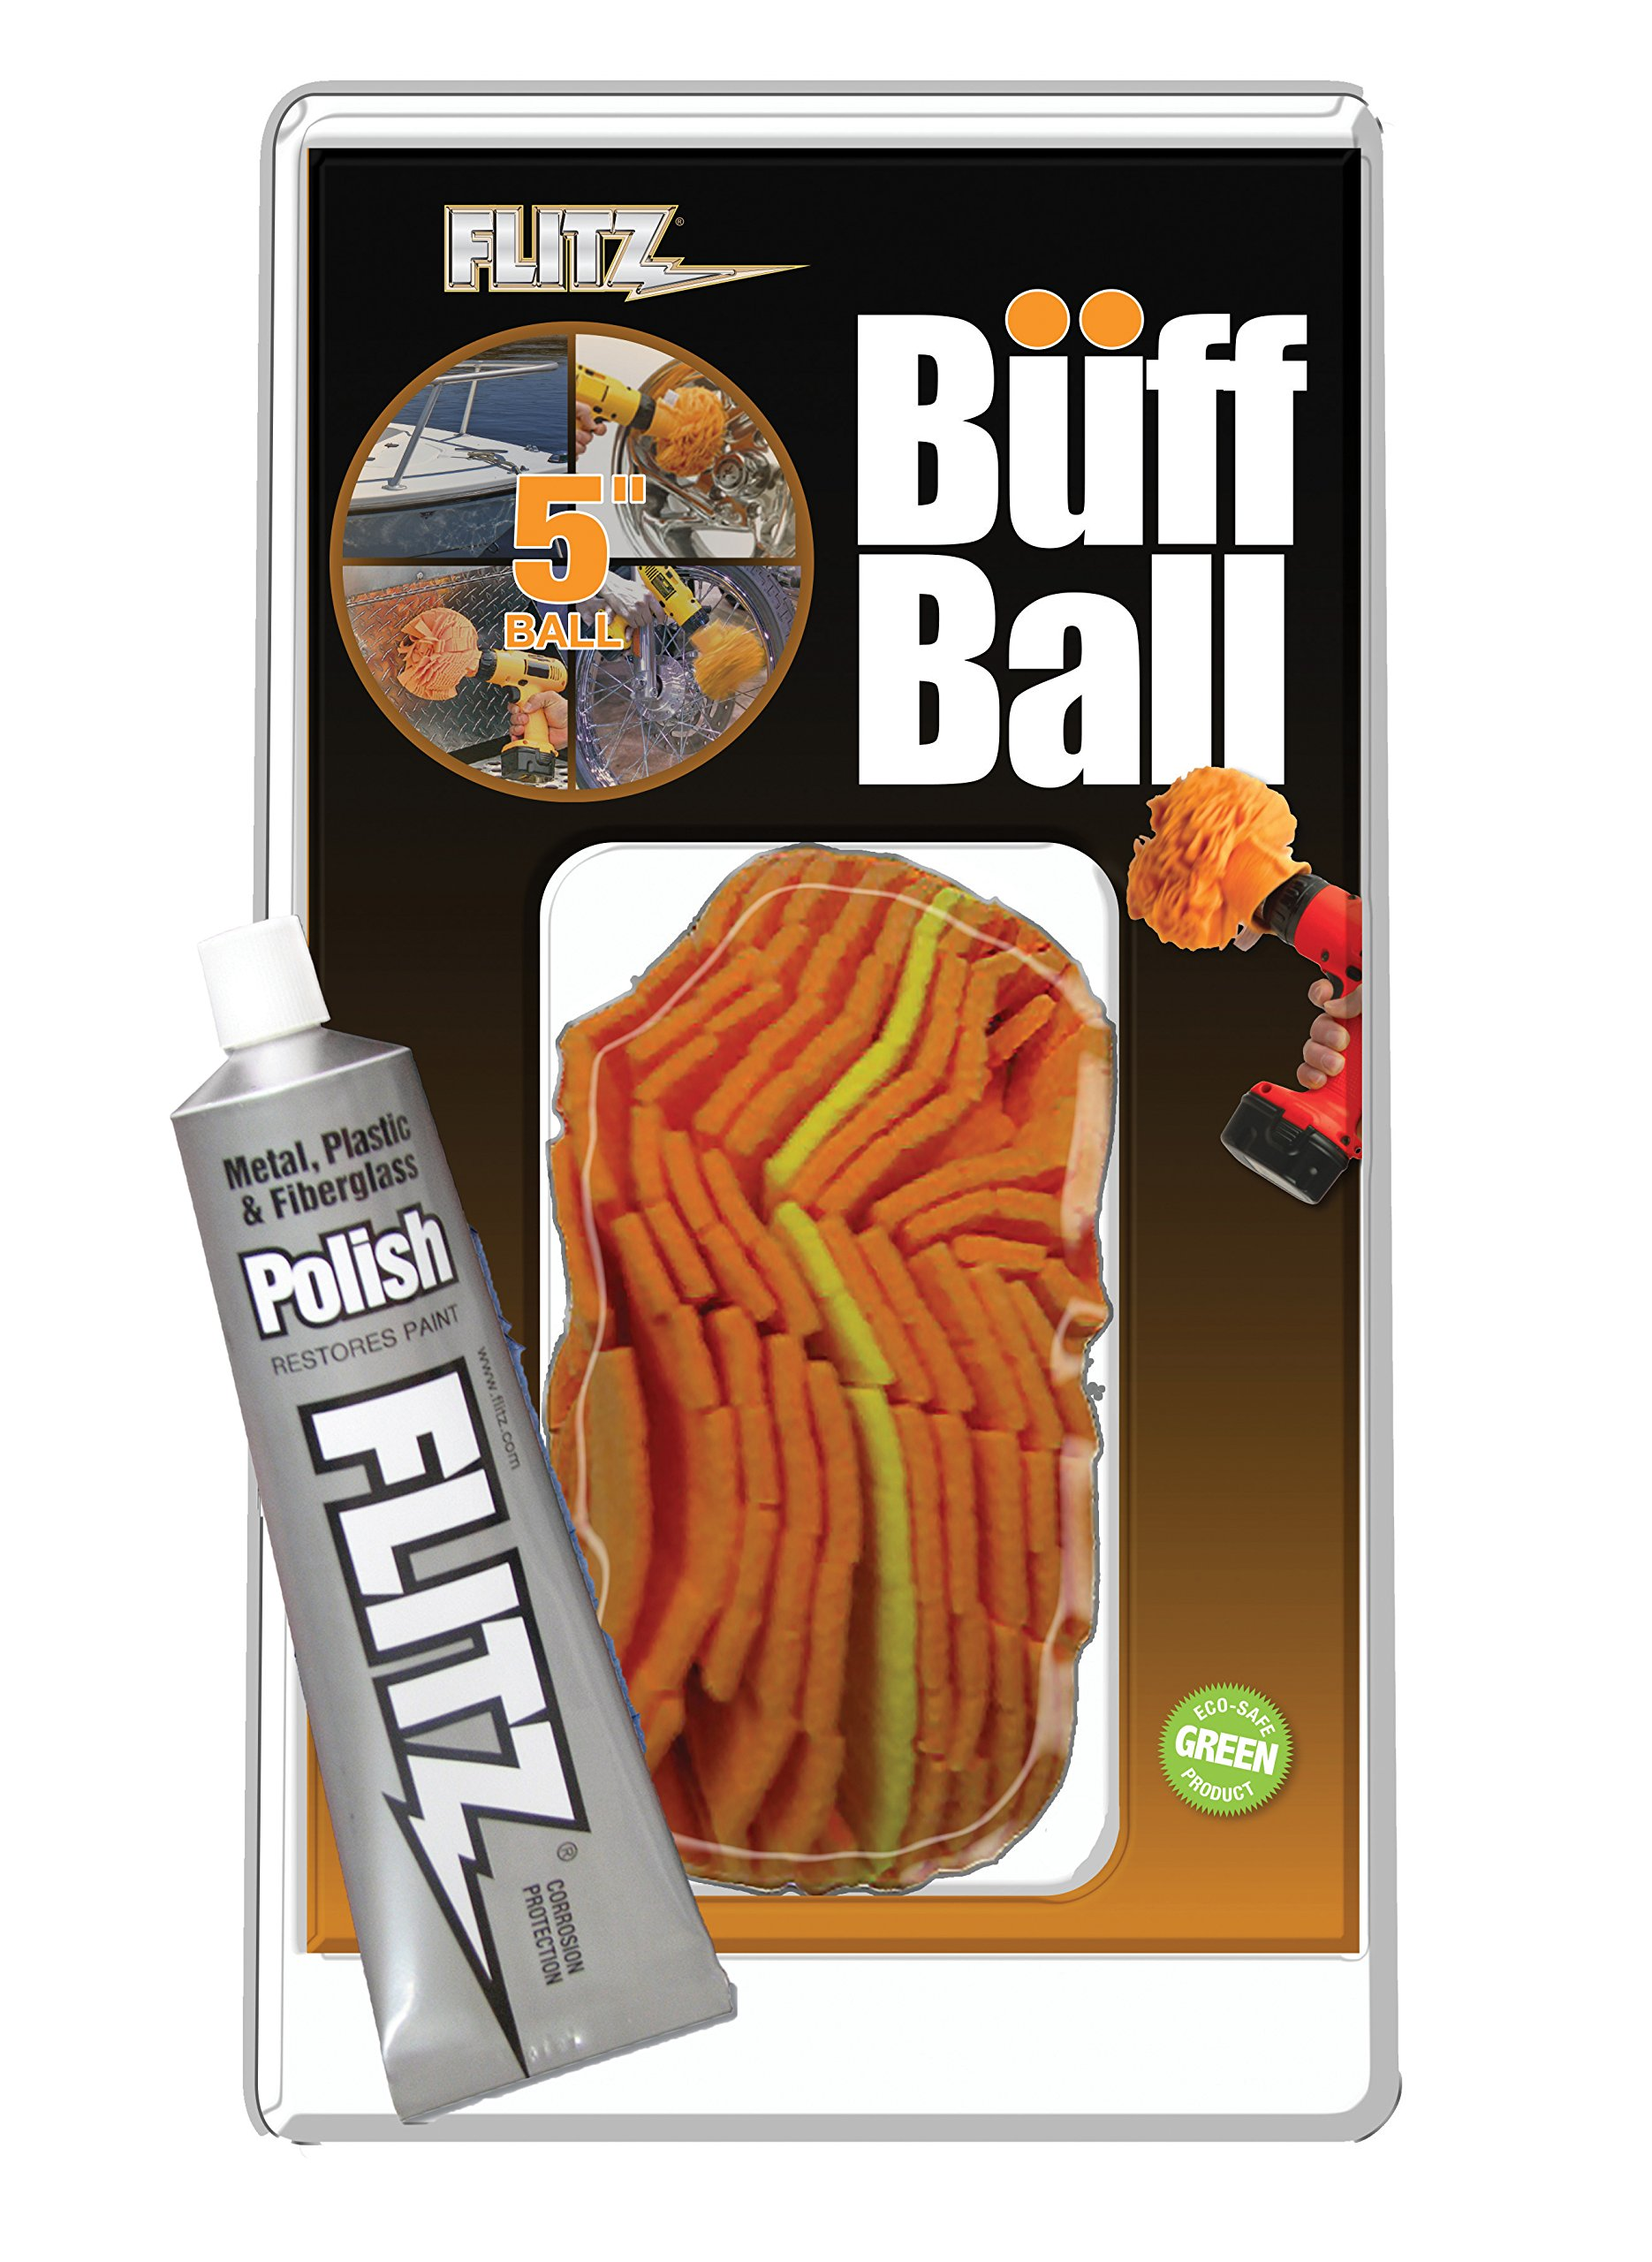 Flitz PB 101-50 Buff Ball Car Buffer Drill Attachment with Self-Cooling Design That Never Scorches or Burns + No Exposed Hardware to Prevent Scratches, Buff and Polish Any Surface, Machine Washable, 5 Inch,Orange